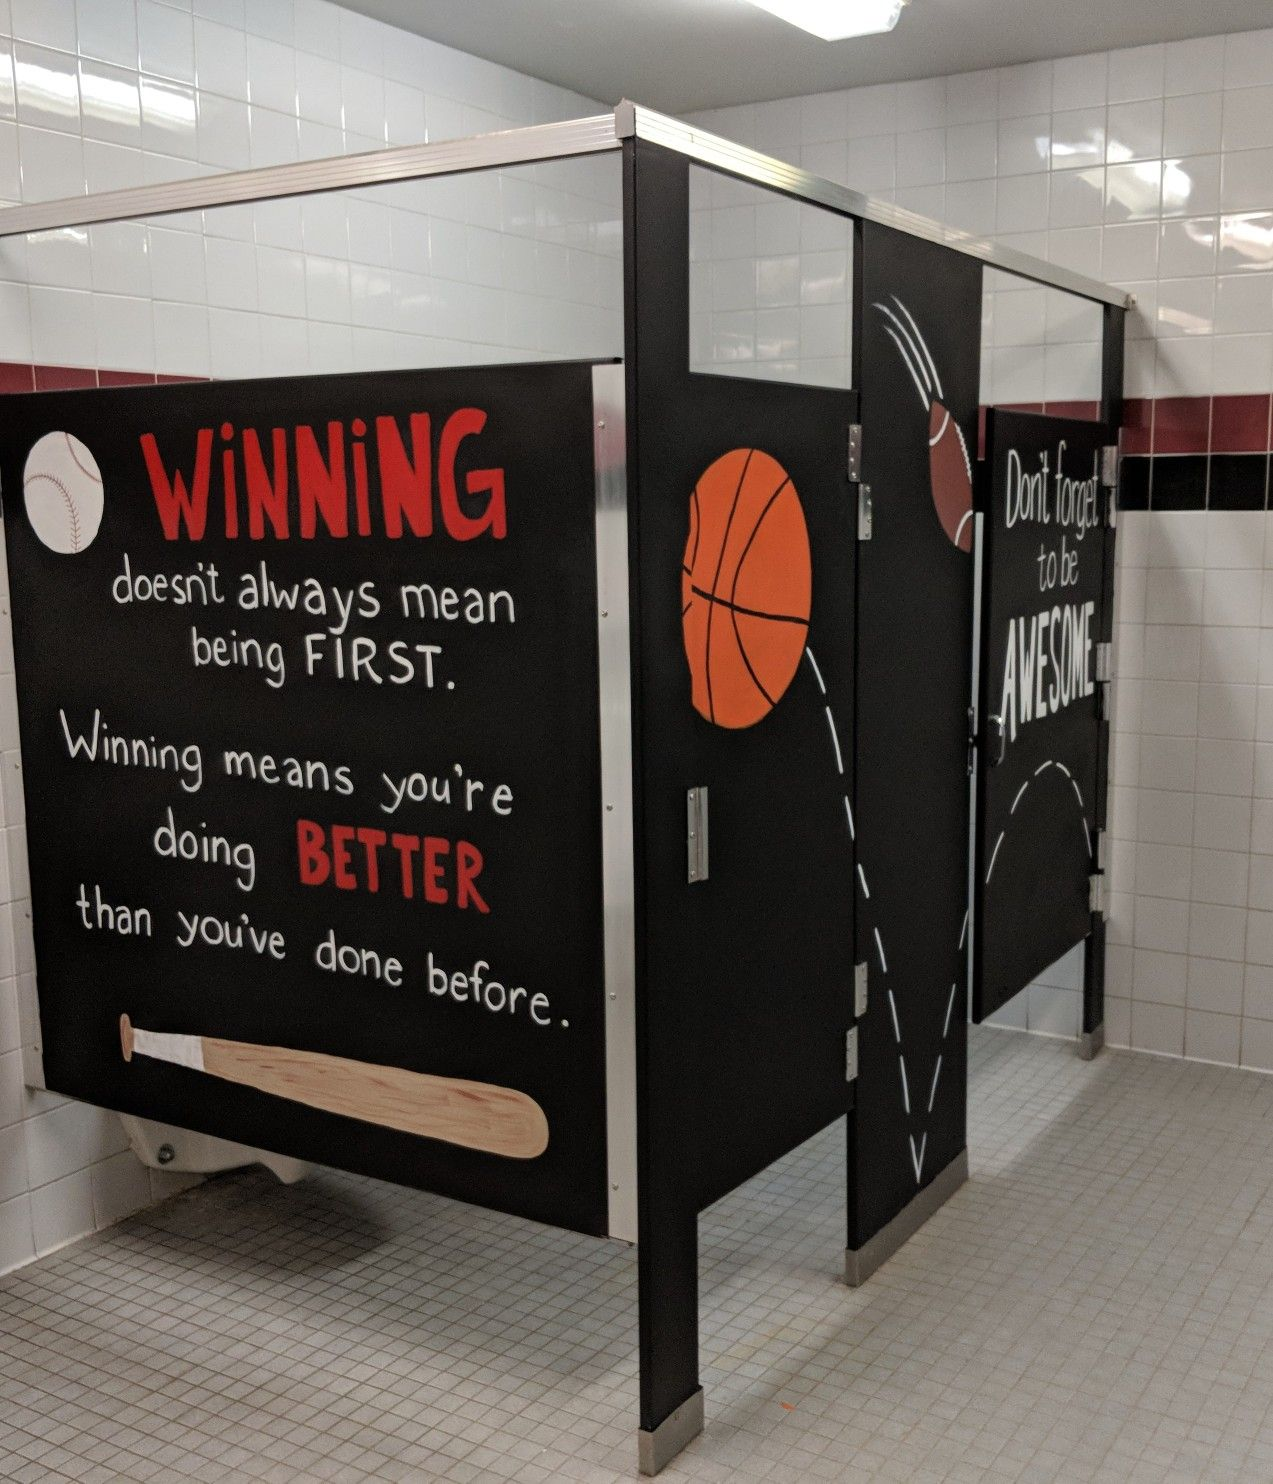 Inspiration Stalls Boys School Bathroom Stall Art Makeover And Positive Messages Don T Forget To Be Awesome Wi School Bathroom School Climate Bathroom Mural